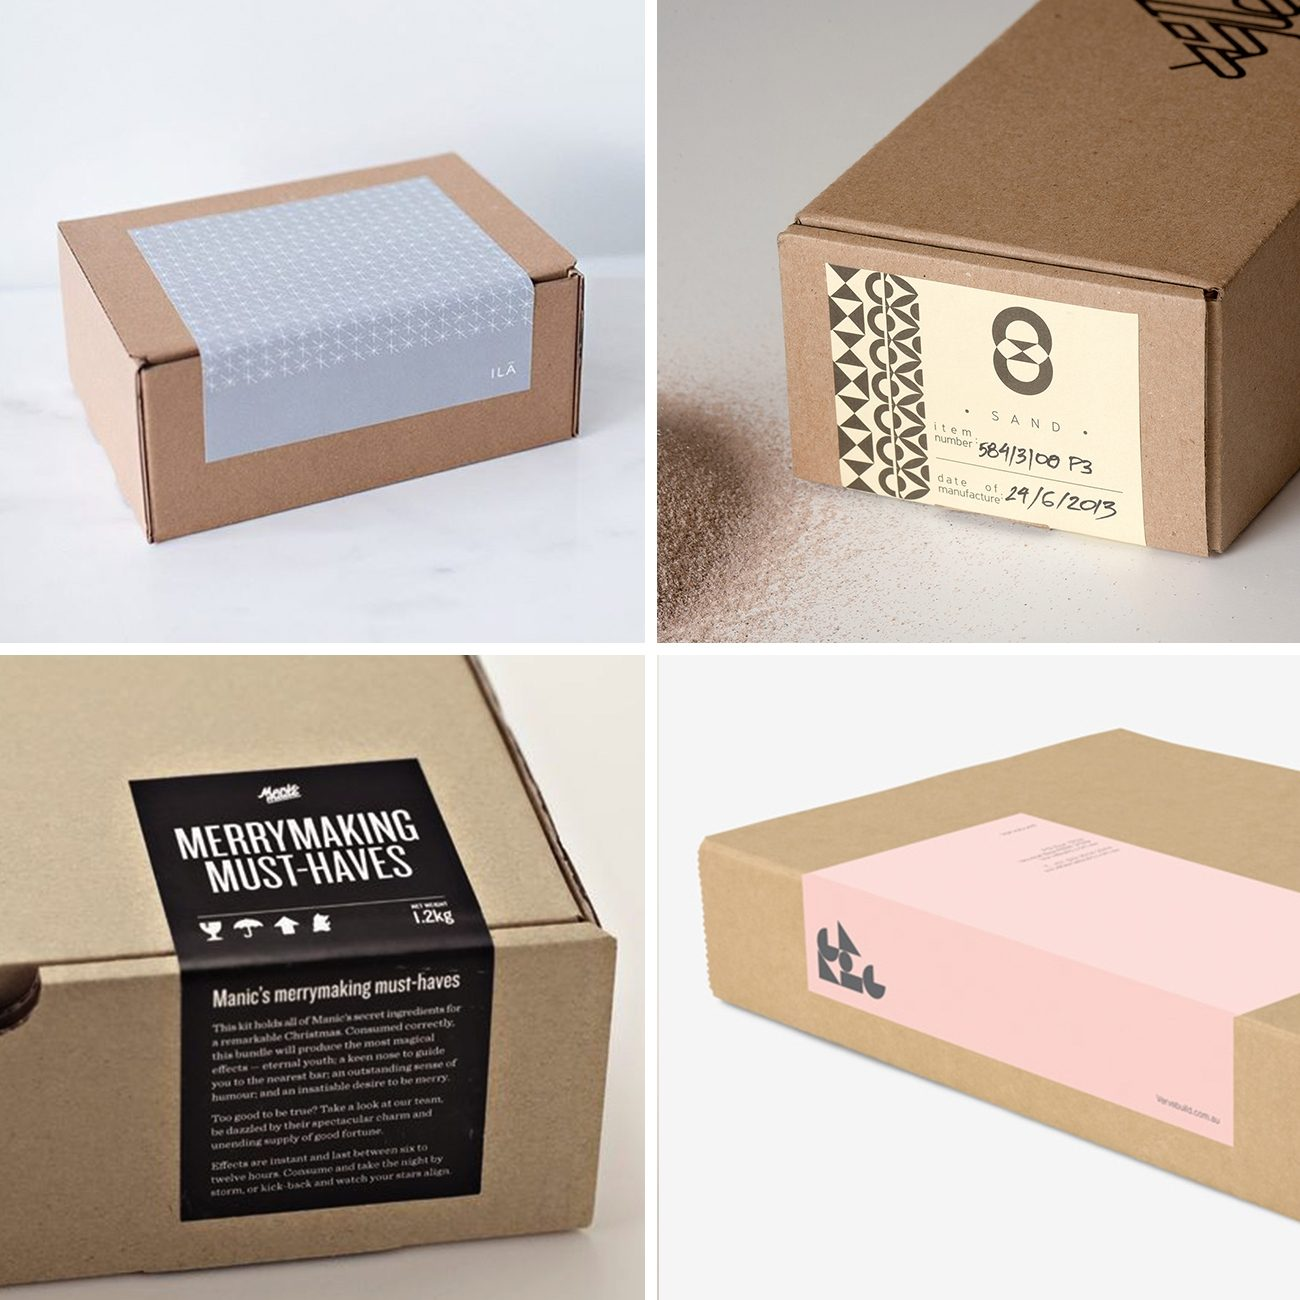 https://s3.amazonaws.com/lumi-blog/_x1300/lumi-holiday-packaging-grid-labels.jpg?mtime=20170623002113